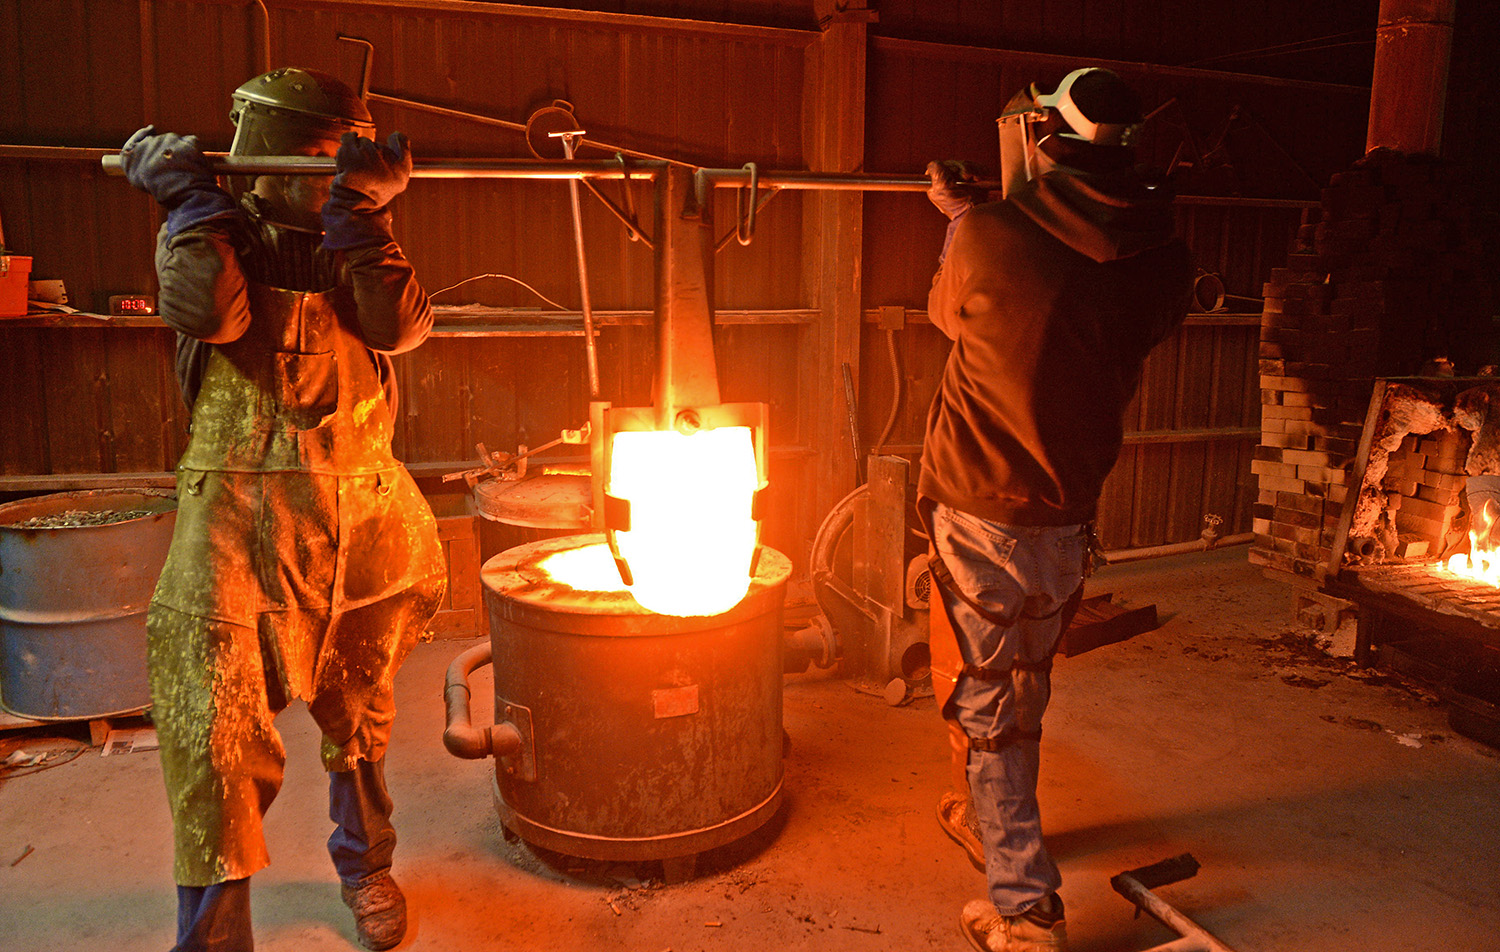 Melting pot: - The only material that can withstand the heat and contain the molten metal is graphite. The liquid bronze is in a graphite crucible which is handled by a giant pair of steel lifting tongs, then placed into a set of pouring shanks.